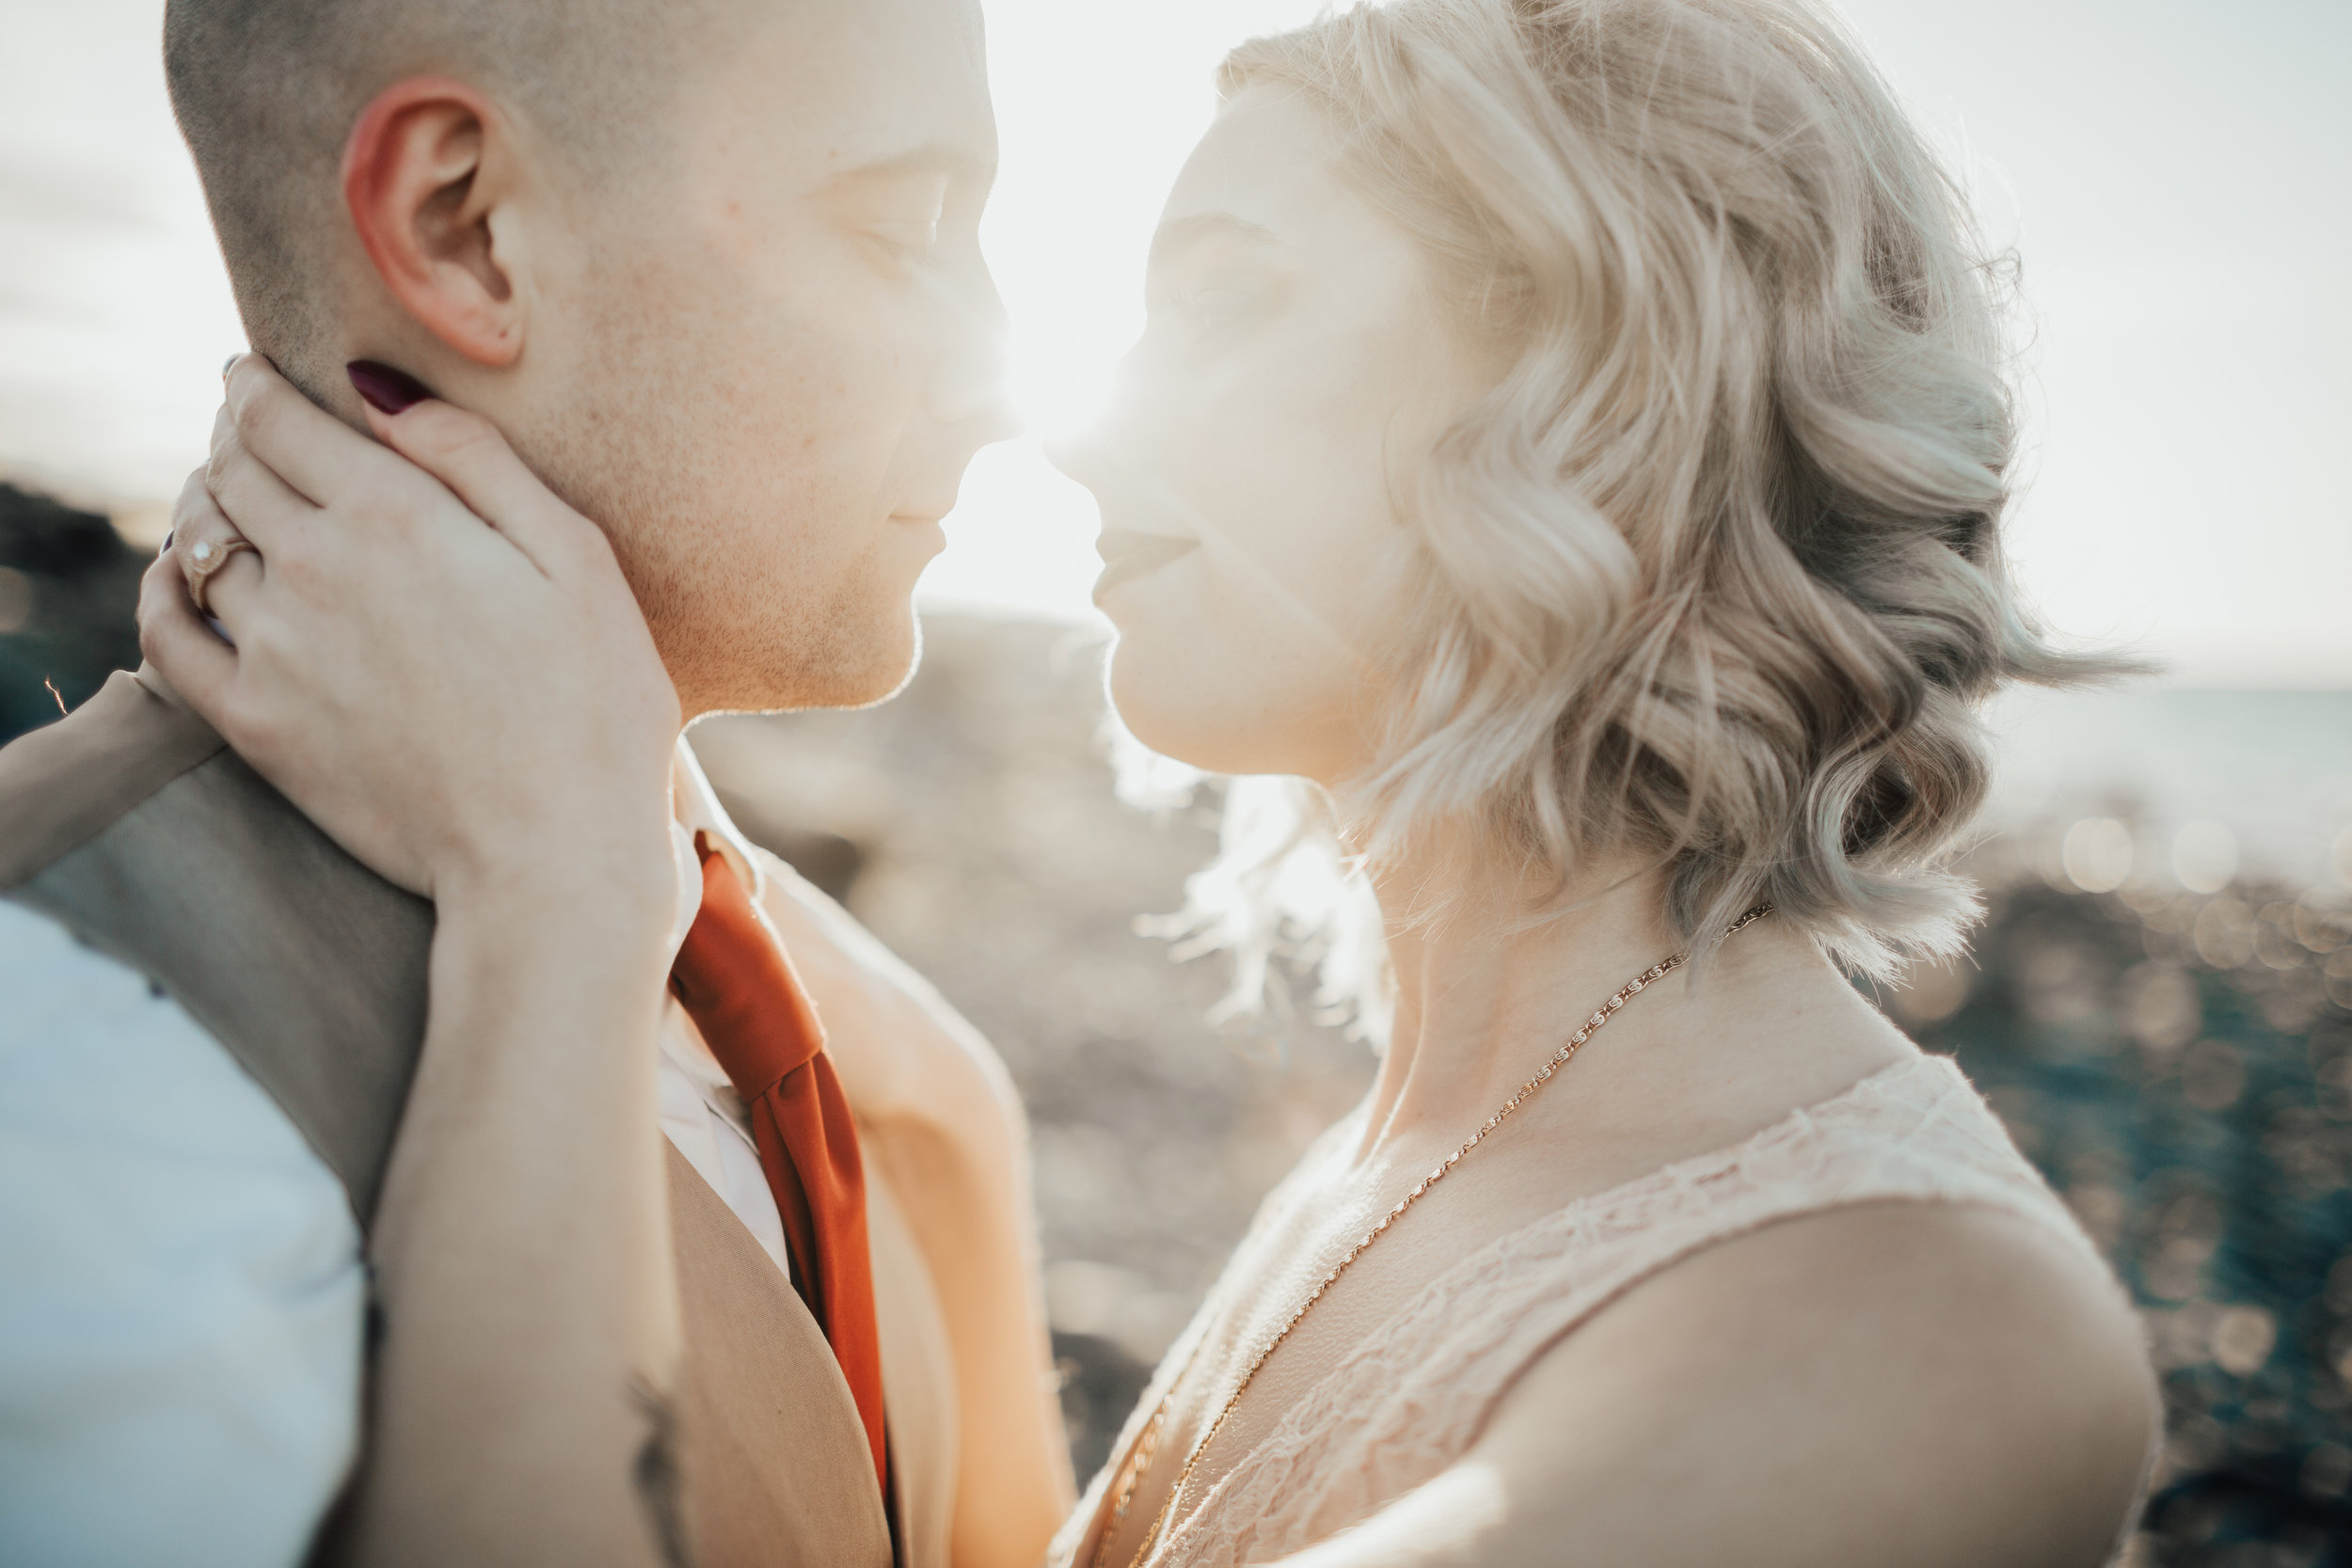 Port Angeles-PNW-Sequim-Portrait-wedding-elopement-photographer-kayladawnphoto-kayla dawn photography-olympic peninsula-portraiture93.jpg